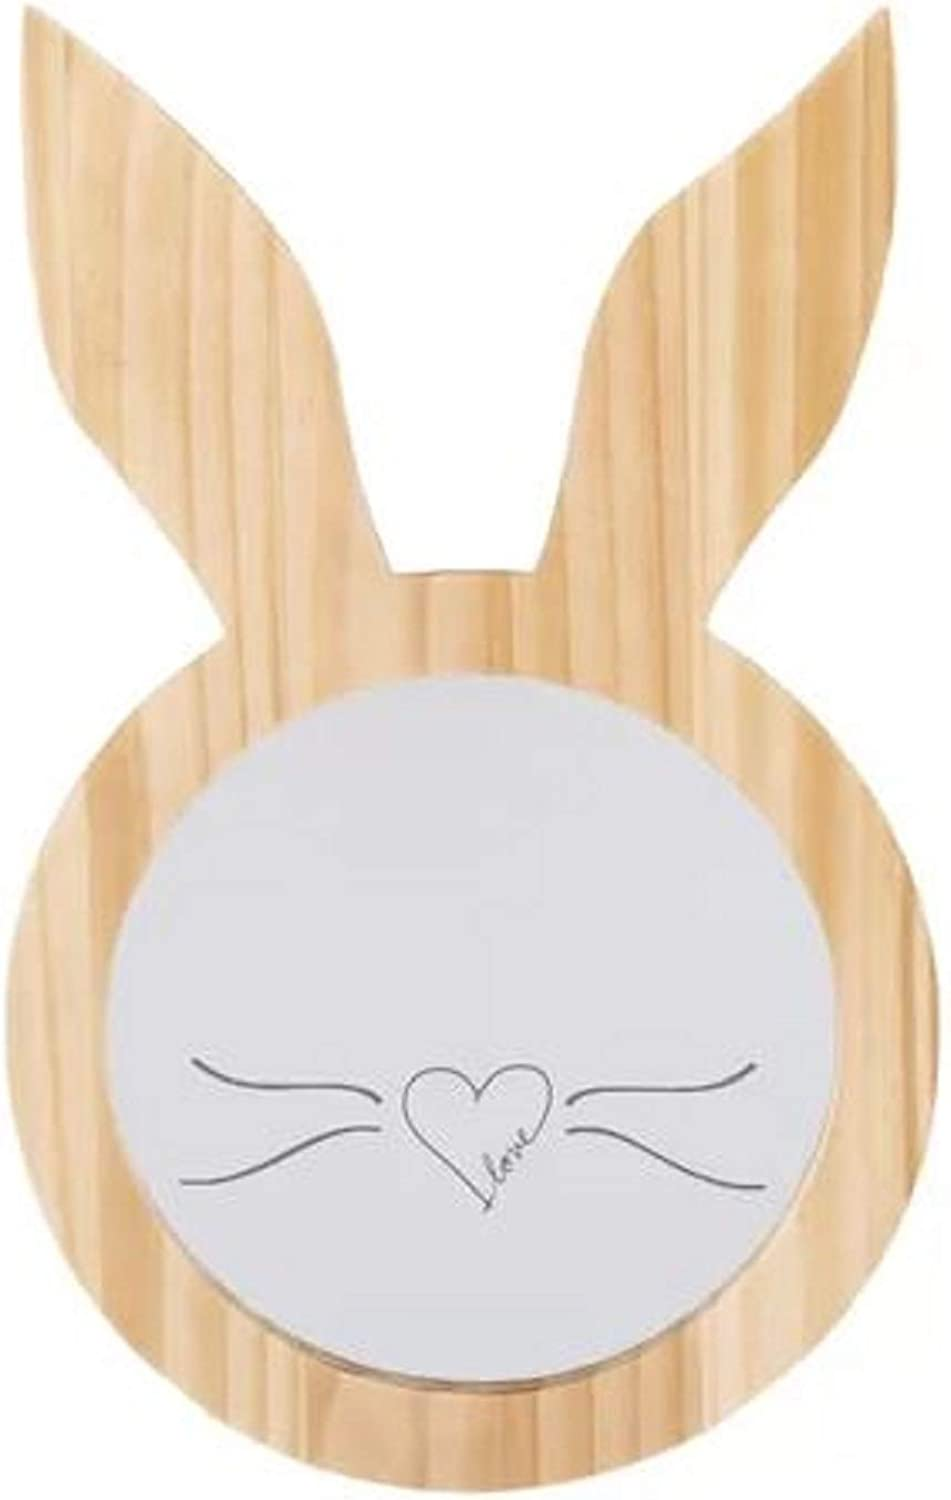 House Decoration Modern Accent Mirror. Starry Night Bunny Ears House Decoration Modern Accent Mirror Round Natural Wood Frame Shatter Proof Wall Mounted